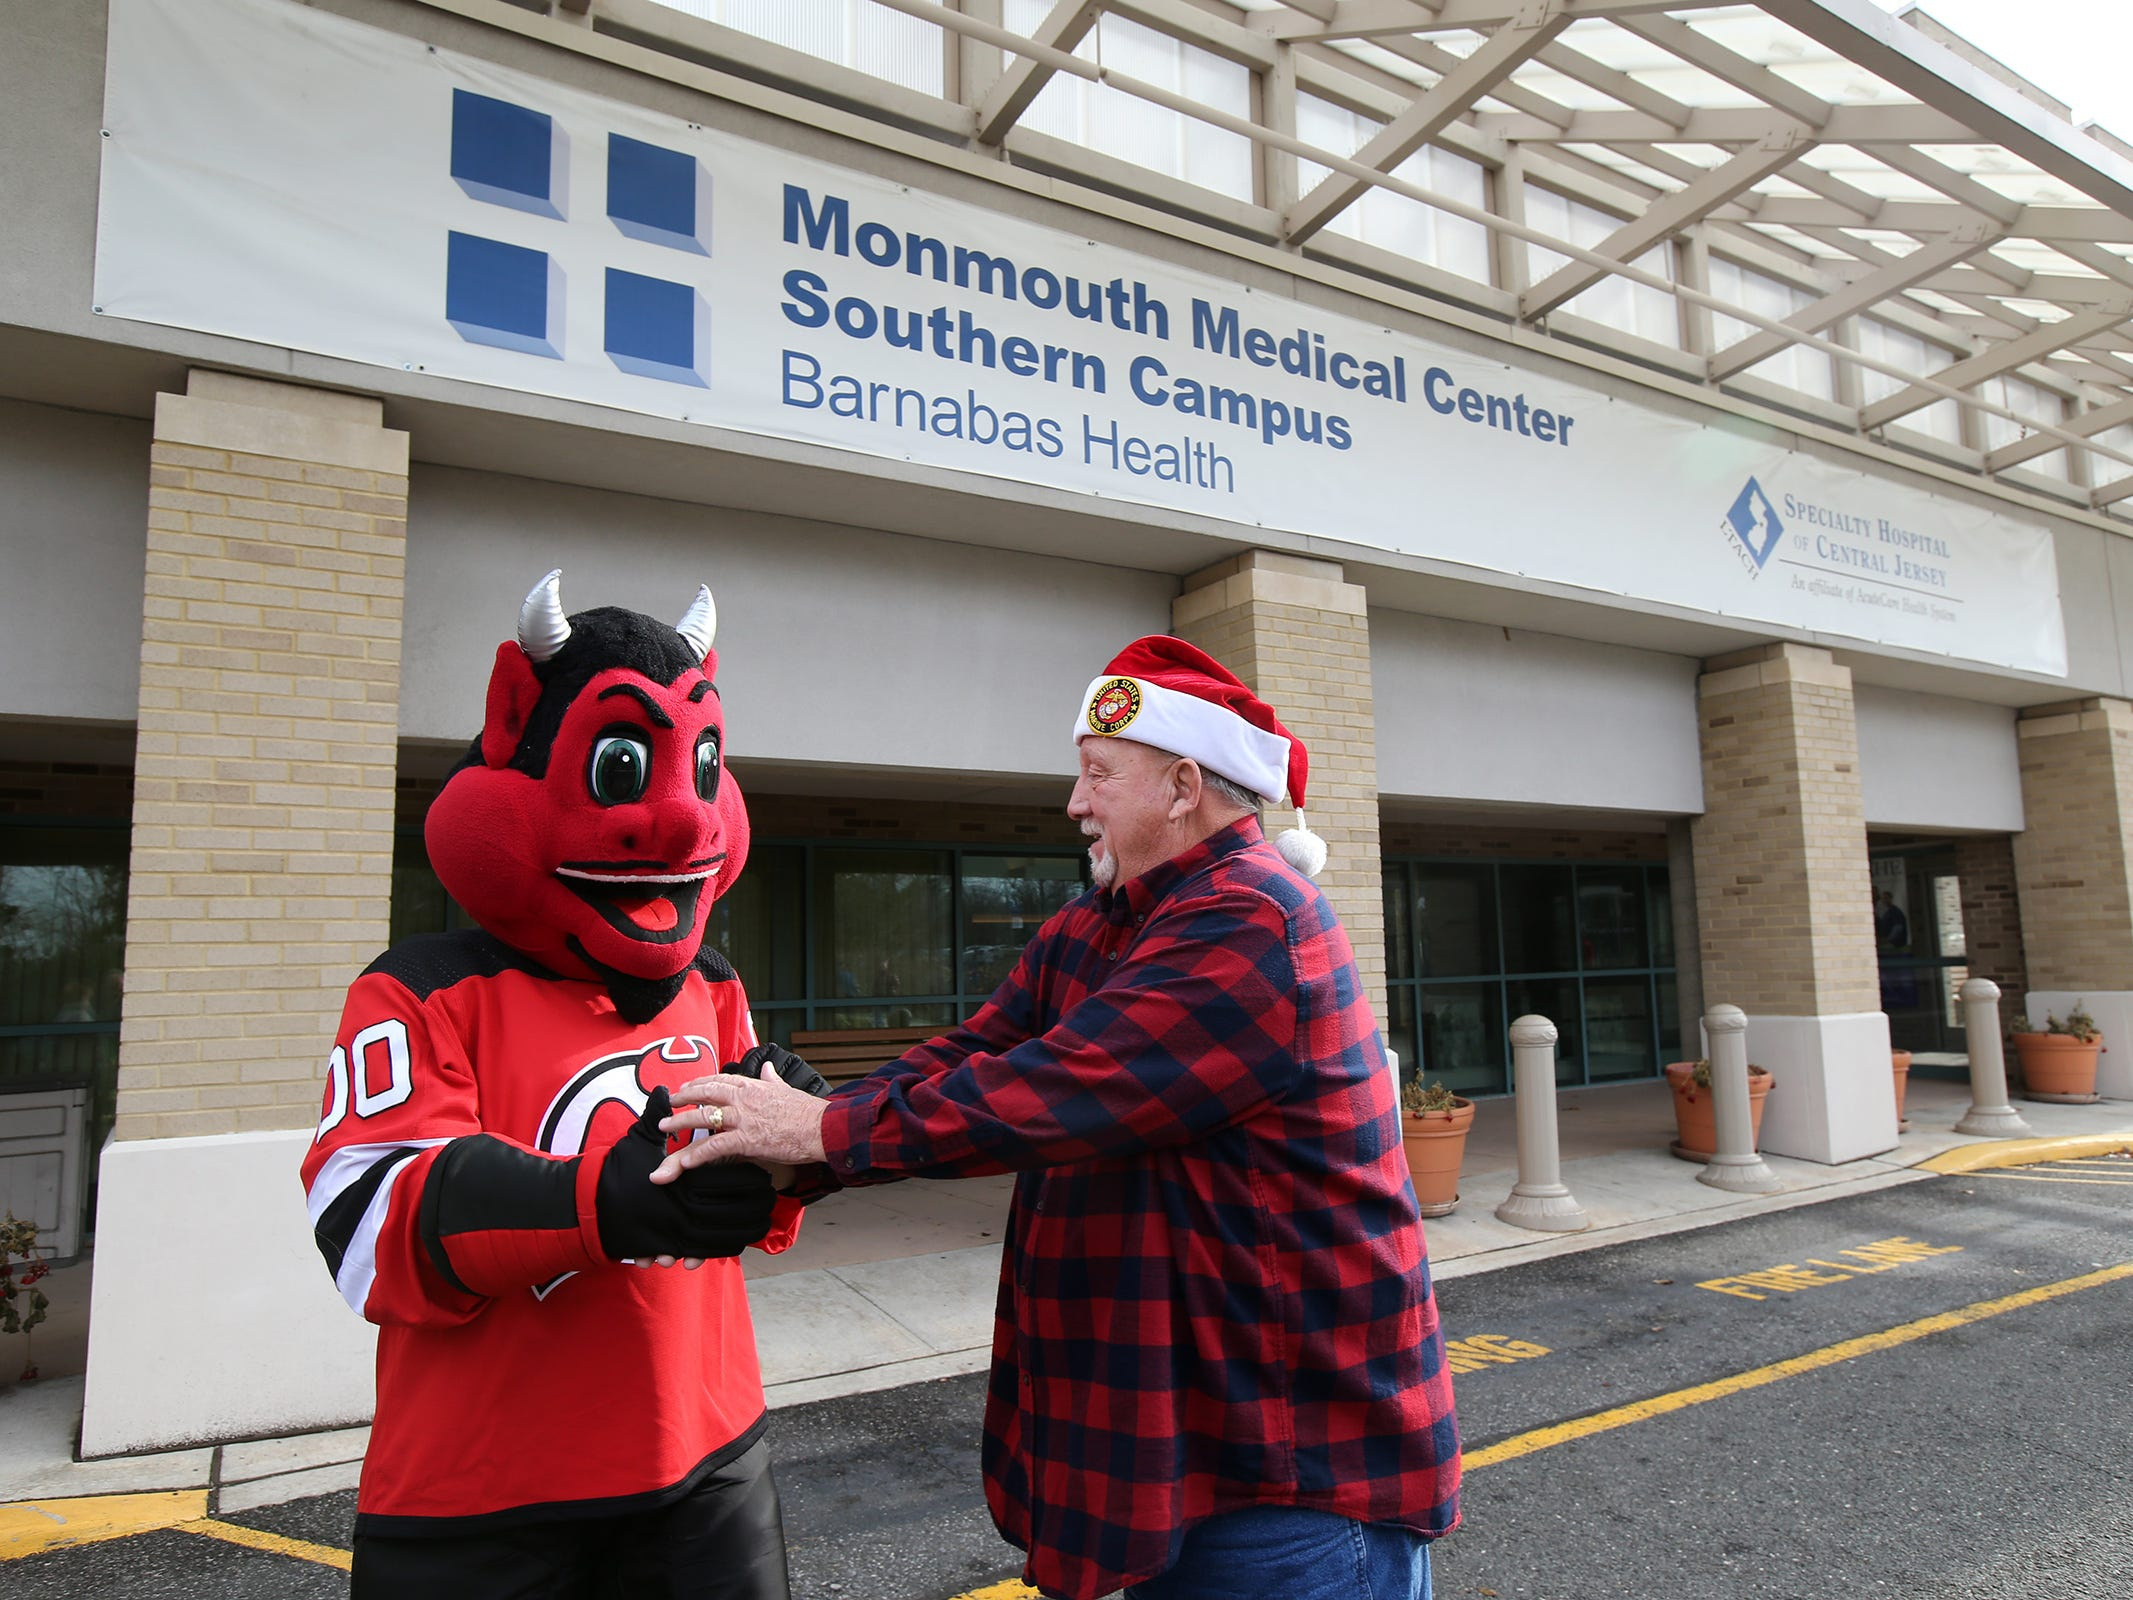 The New Jersey Devils' mascot greets Ed Ward of Lakewood, a retired Lakewood police detective, at the Monmouth Medical Center Southern Campus in Lakewood, NJ Monday, December 17, 2018. During his visit, he loaded donated toys into a police car with members of the Lakewood PBA and Lakewood Police Department.